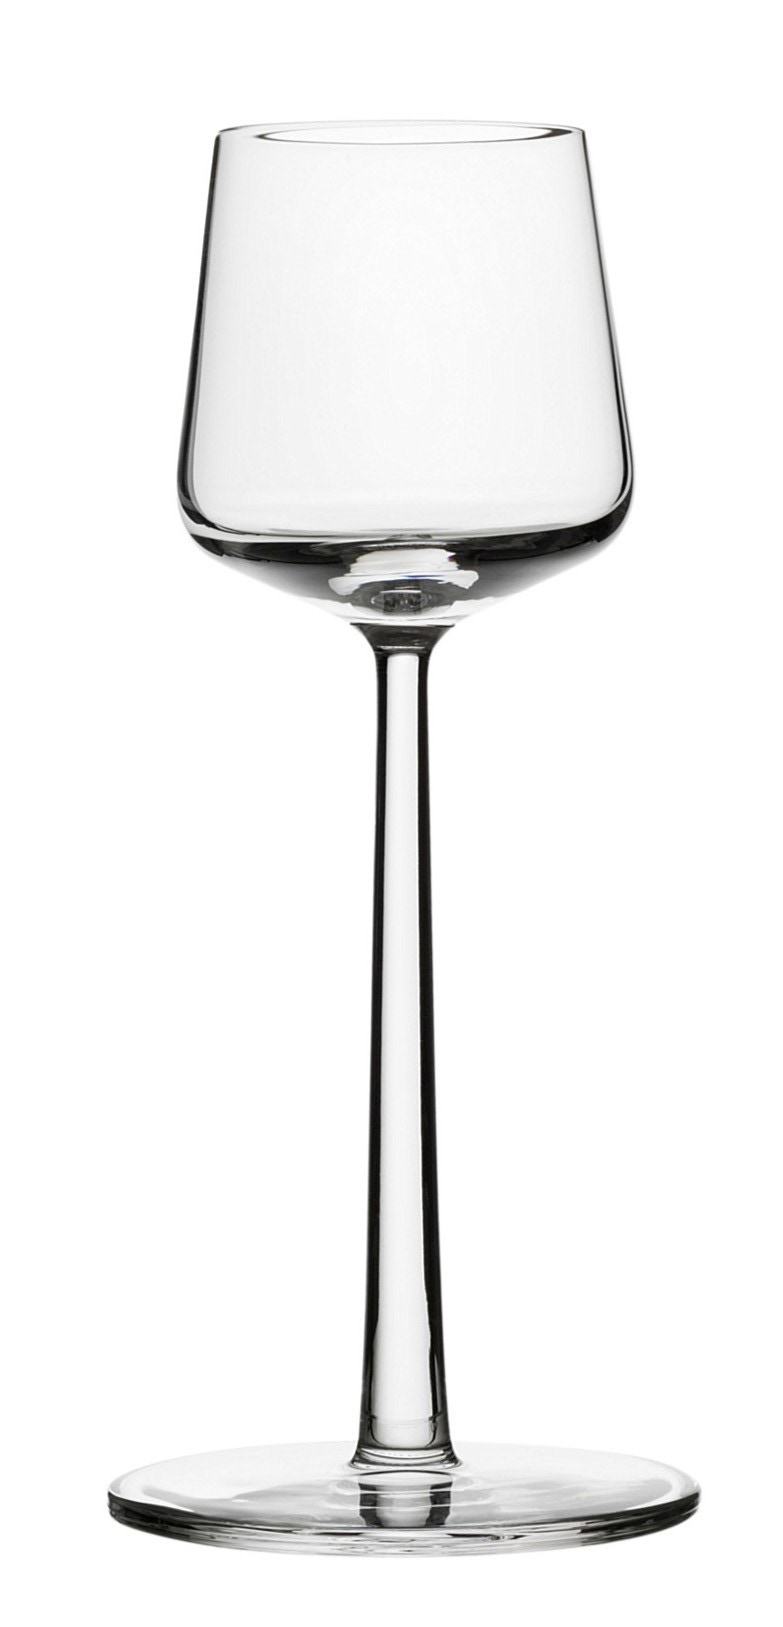 Iittala Essence Sherry Glass Set of Two - Clear